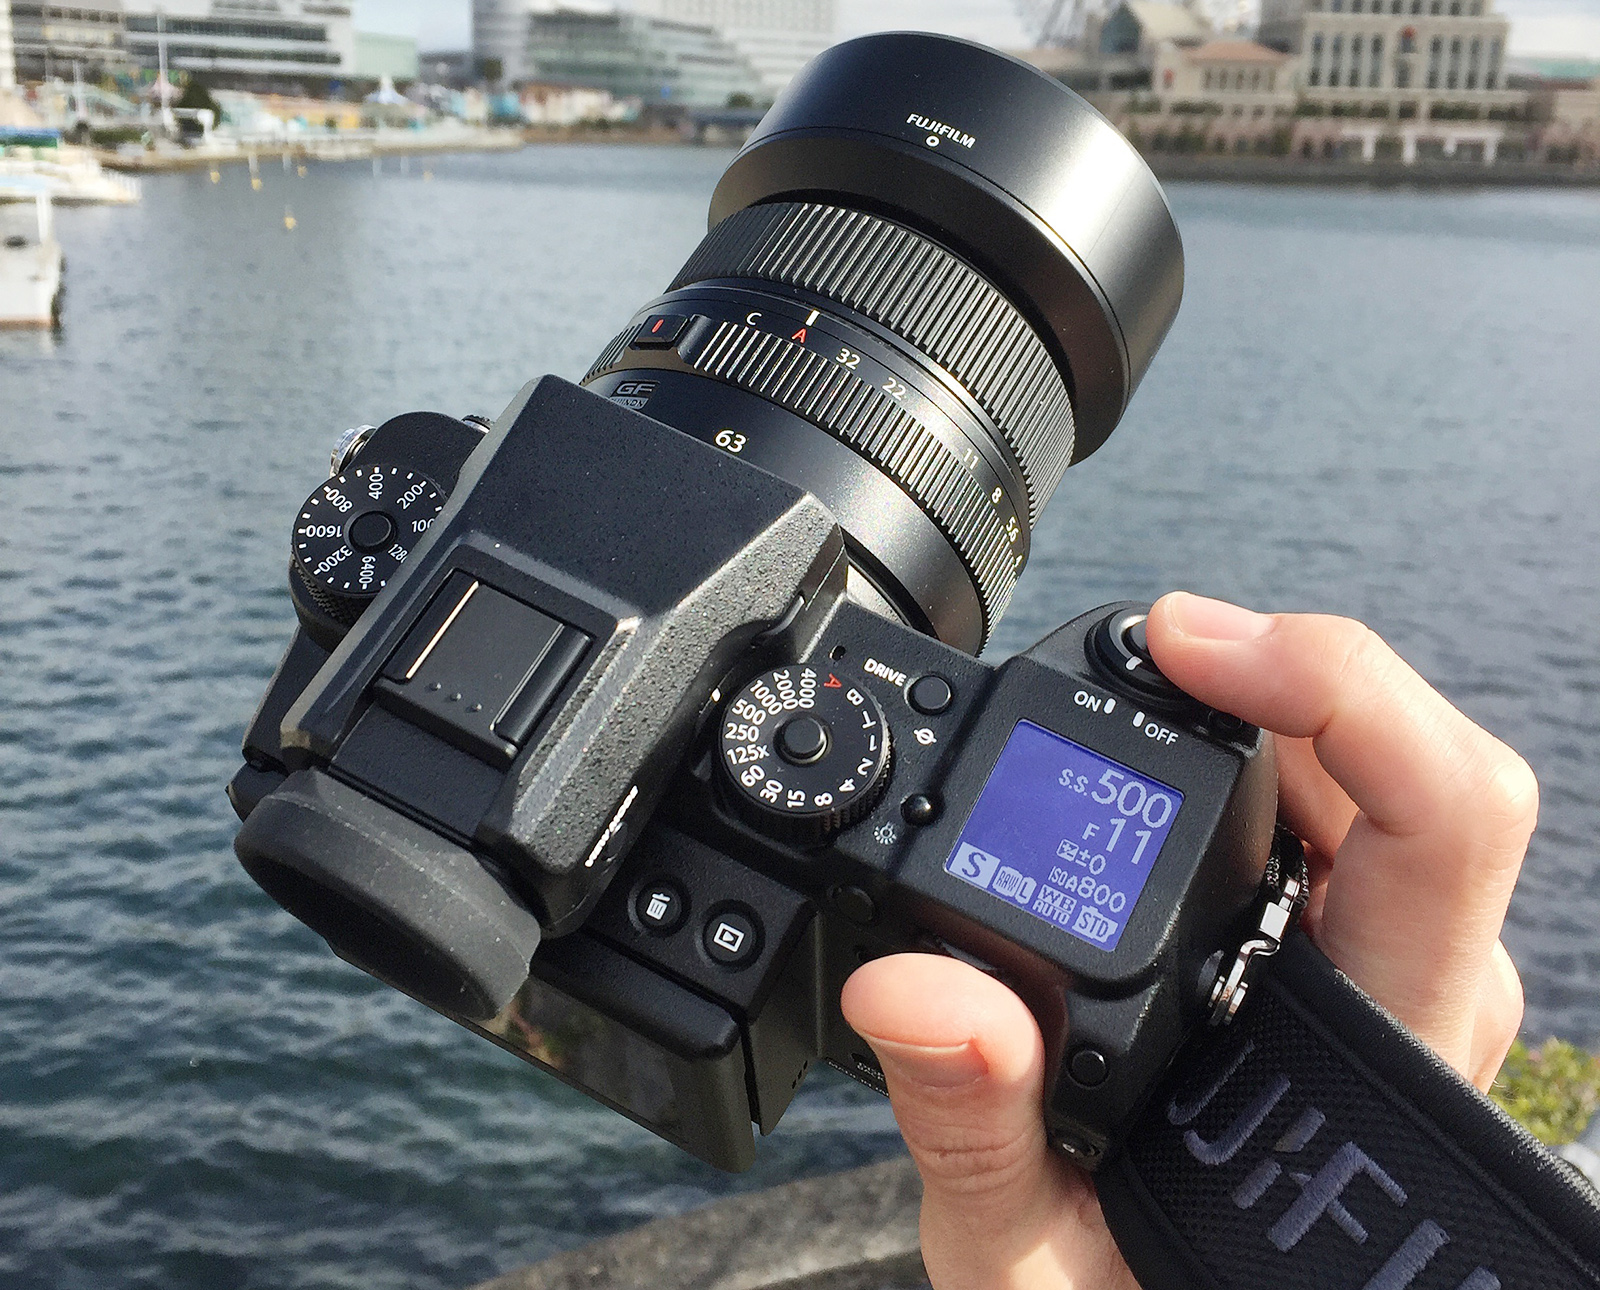 Canon Eos Rebel T7i 800d Review Digital Photography Nikon D7100 Body Only Paket